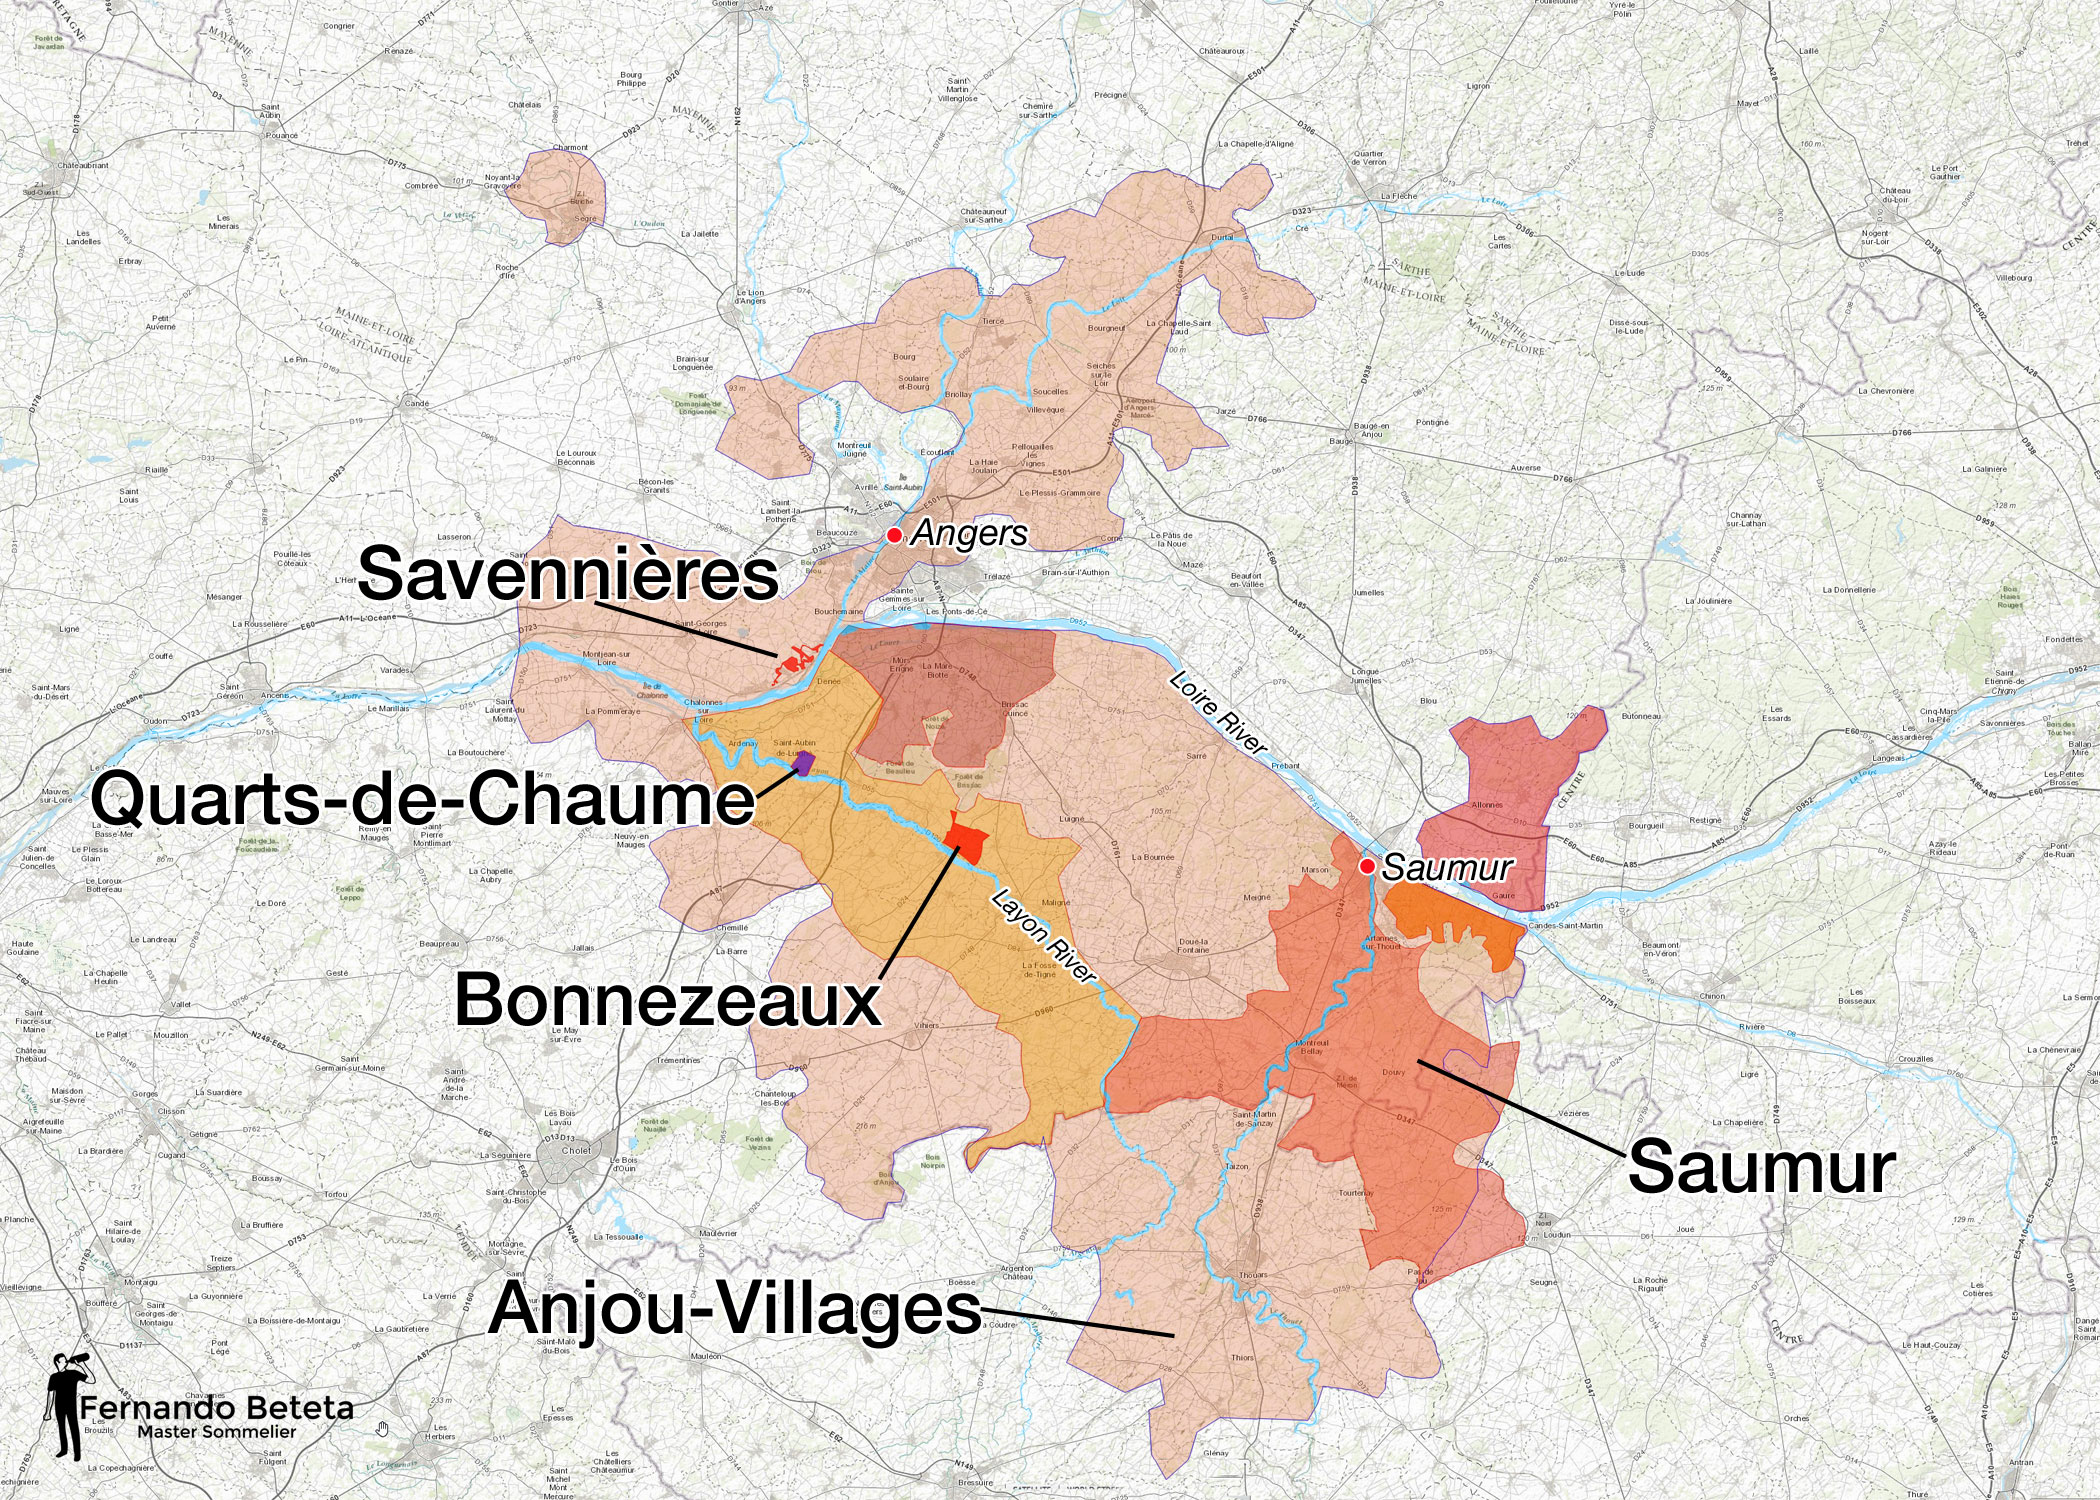 France - Loire Valley - Anjou